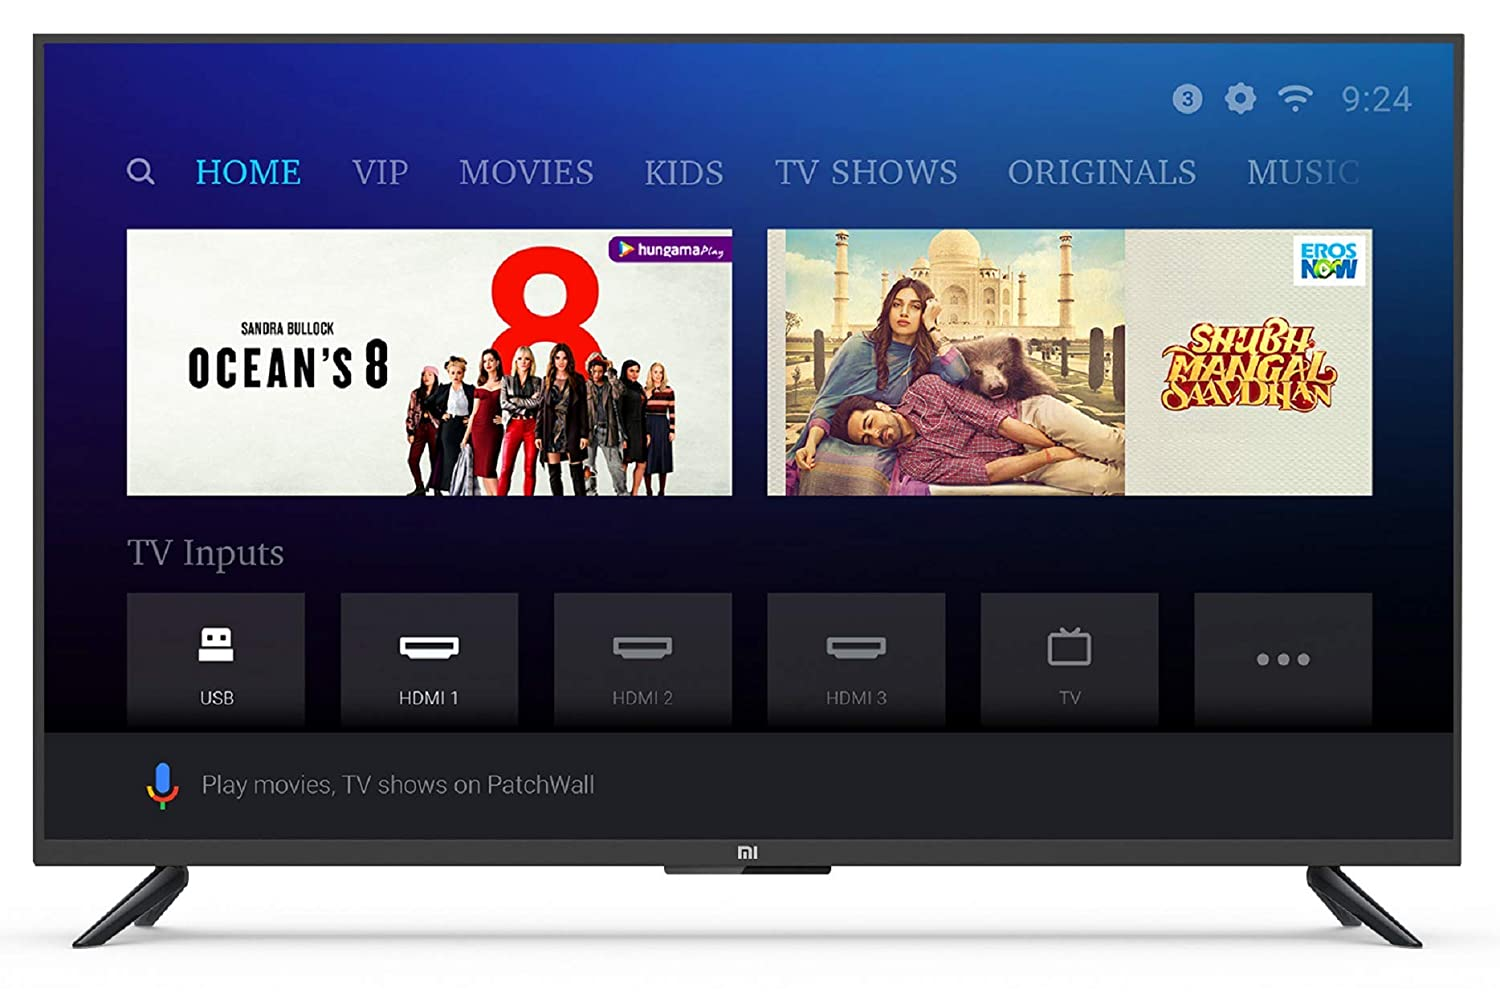 [ Live ] Mi LED TV 4A PRO 123.2 cm (49) Full HD Android TV (Black) at Rs.29999